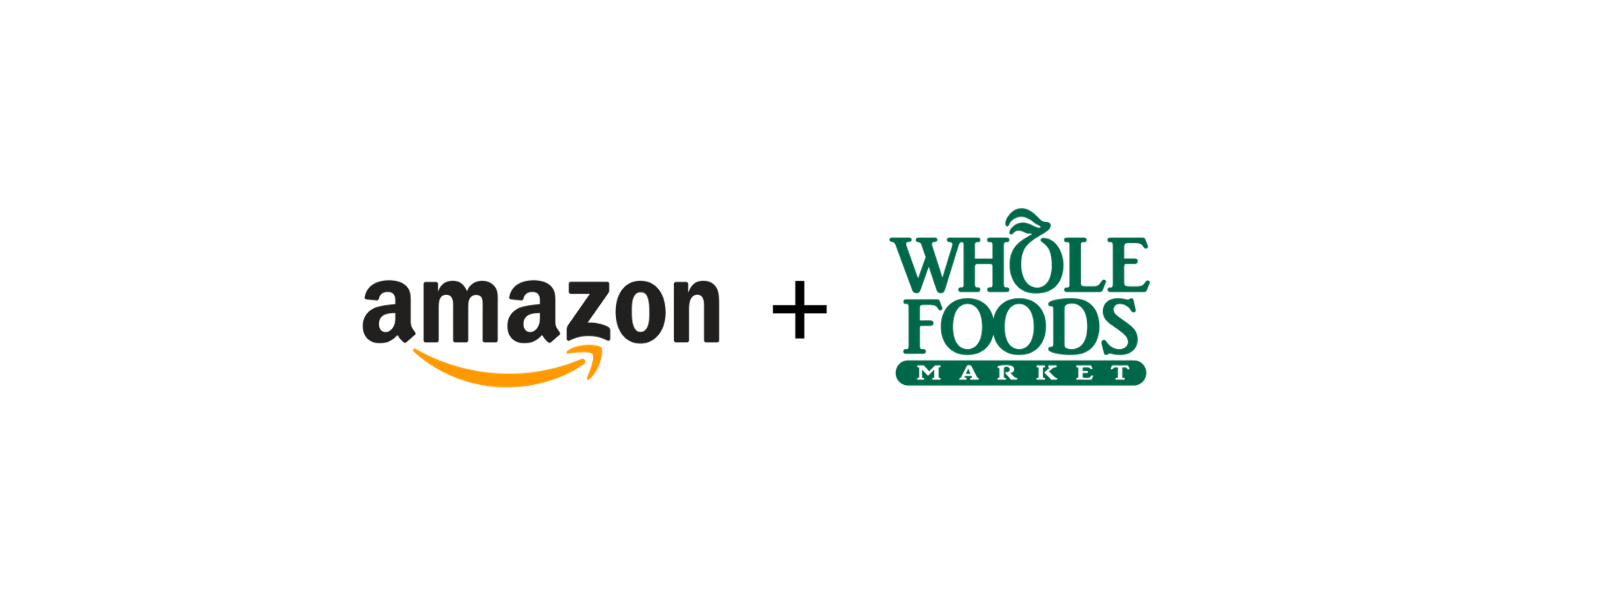 Amazon And Whole Foods Michael Davies Weighs In On WGBH